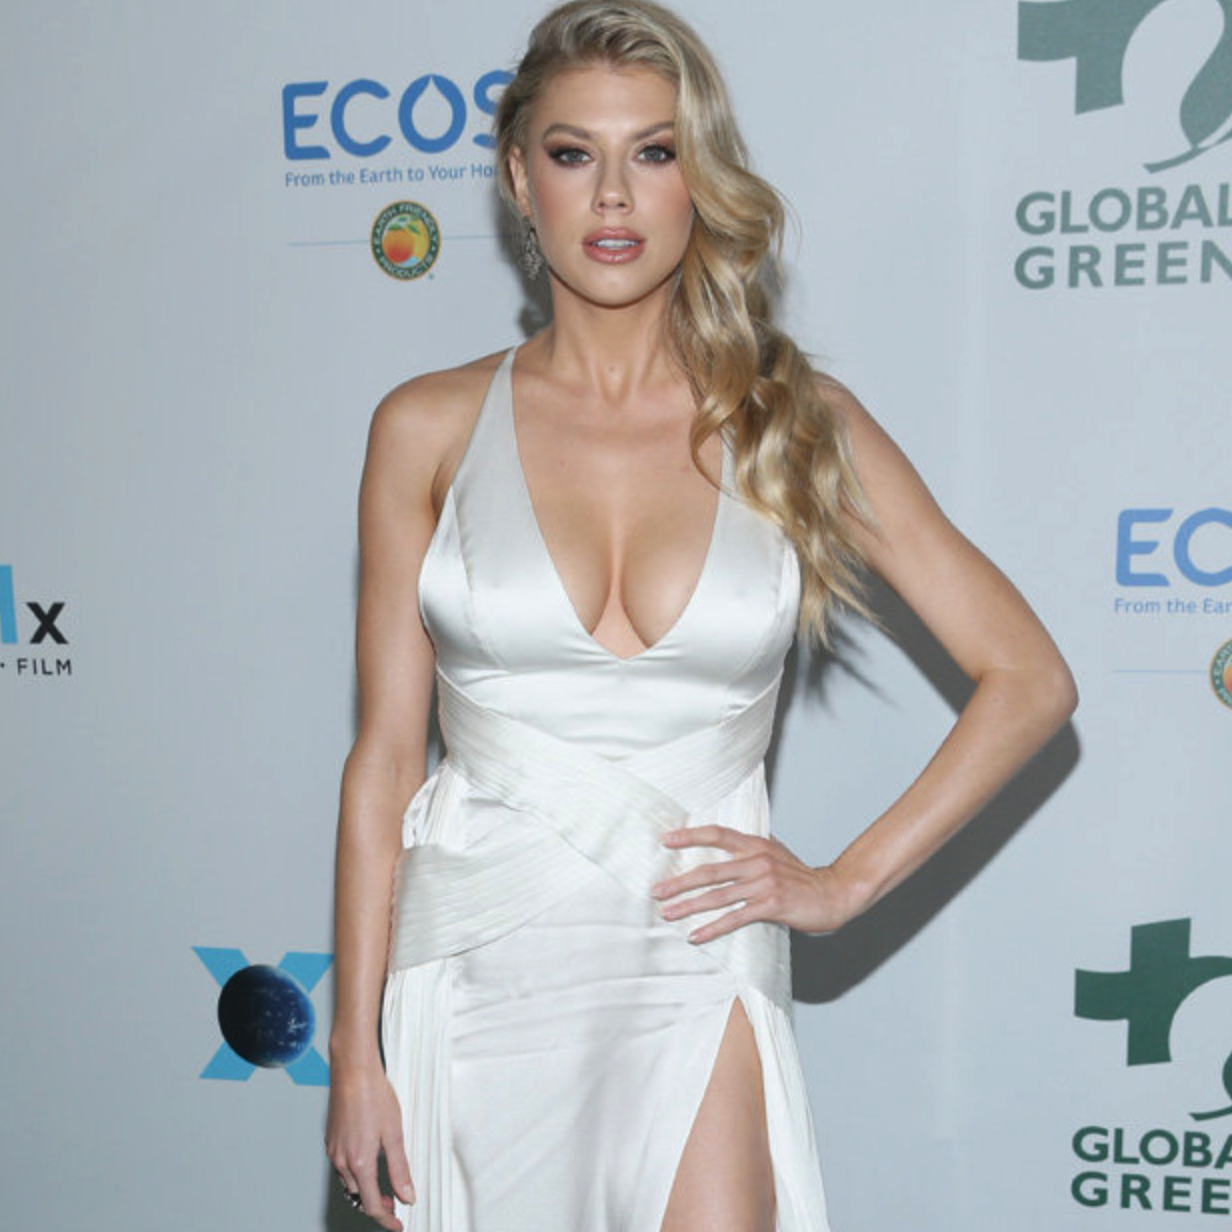 Charlotte McKinney Unleashes Her 32F Assets in Revealing Plunging Dress [SFW PICS]